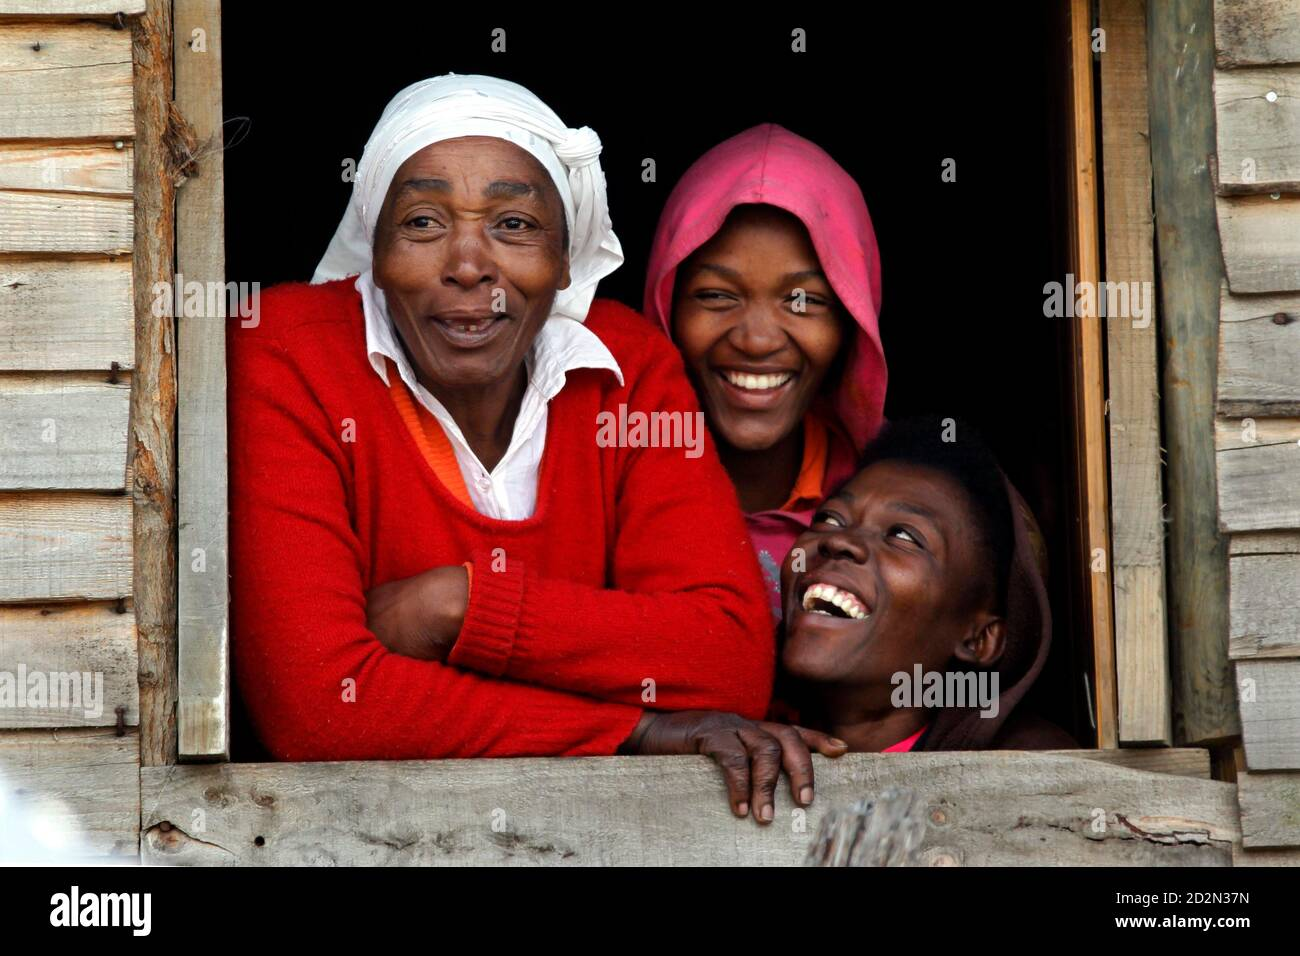 Residents look out a window in a local township in Knysna, near Cape Town June 13, 2010.    REUTERS/Charles Platiau (SOUTH AFRICA - Tags: SOCIETY) Stock Photo